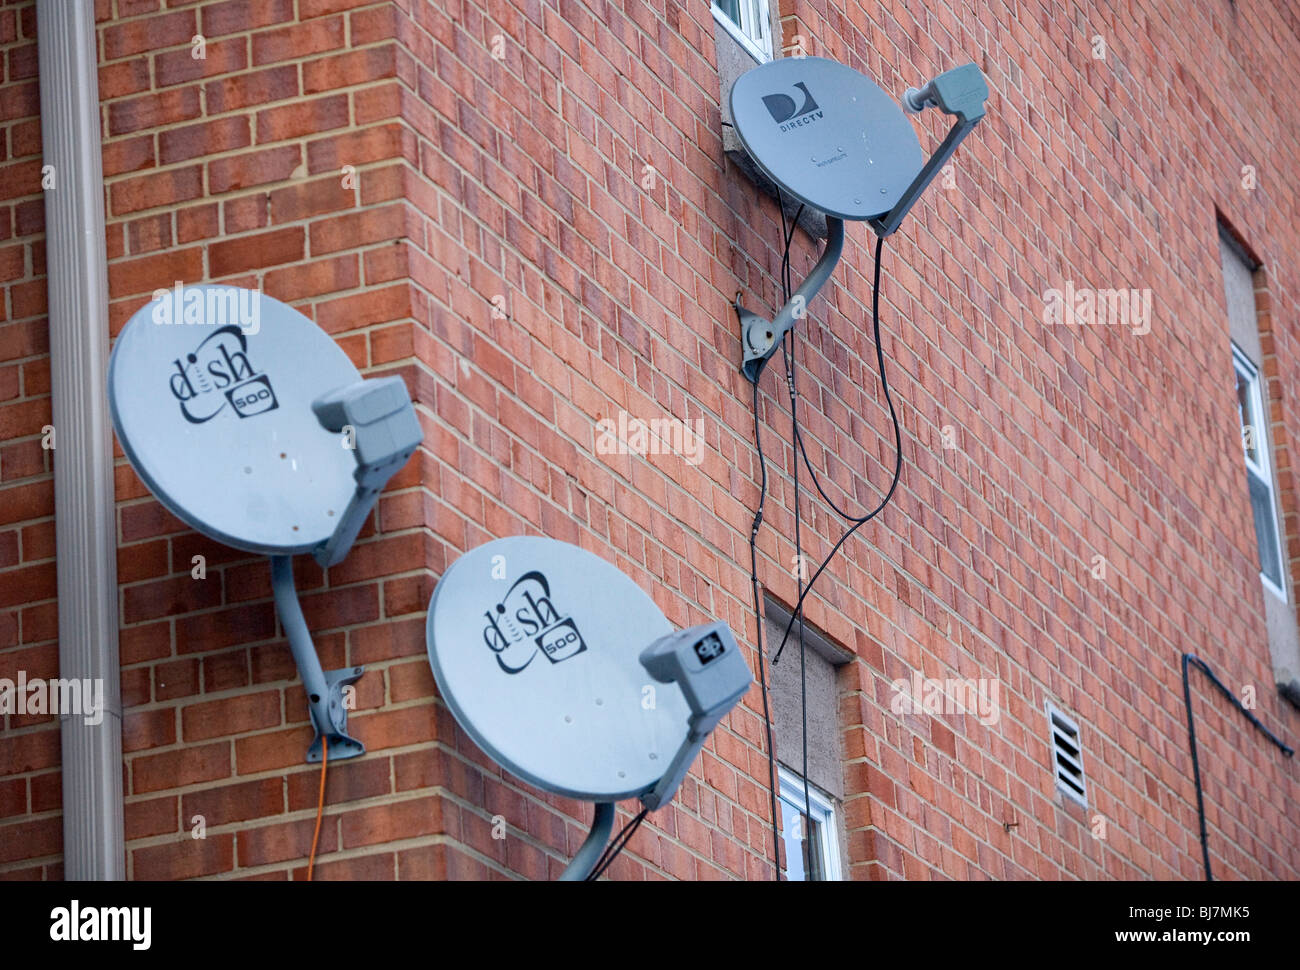 hight resolution of directv and dish network satellite dishes on an apartment building stock image